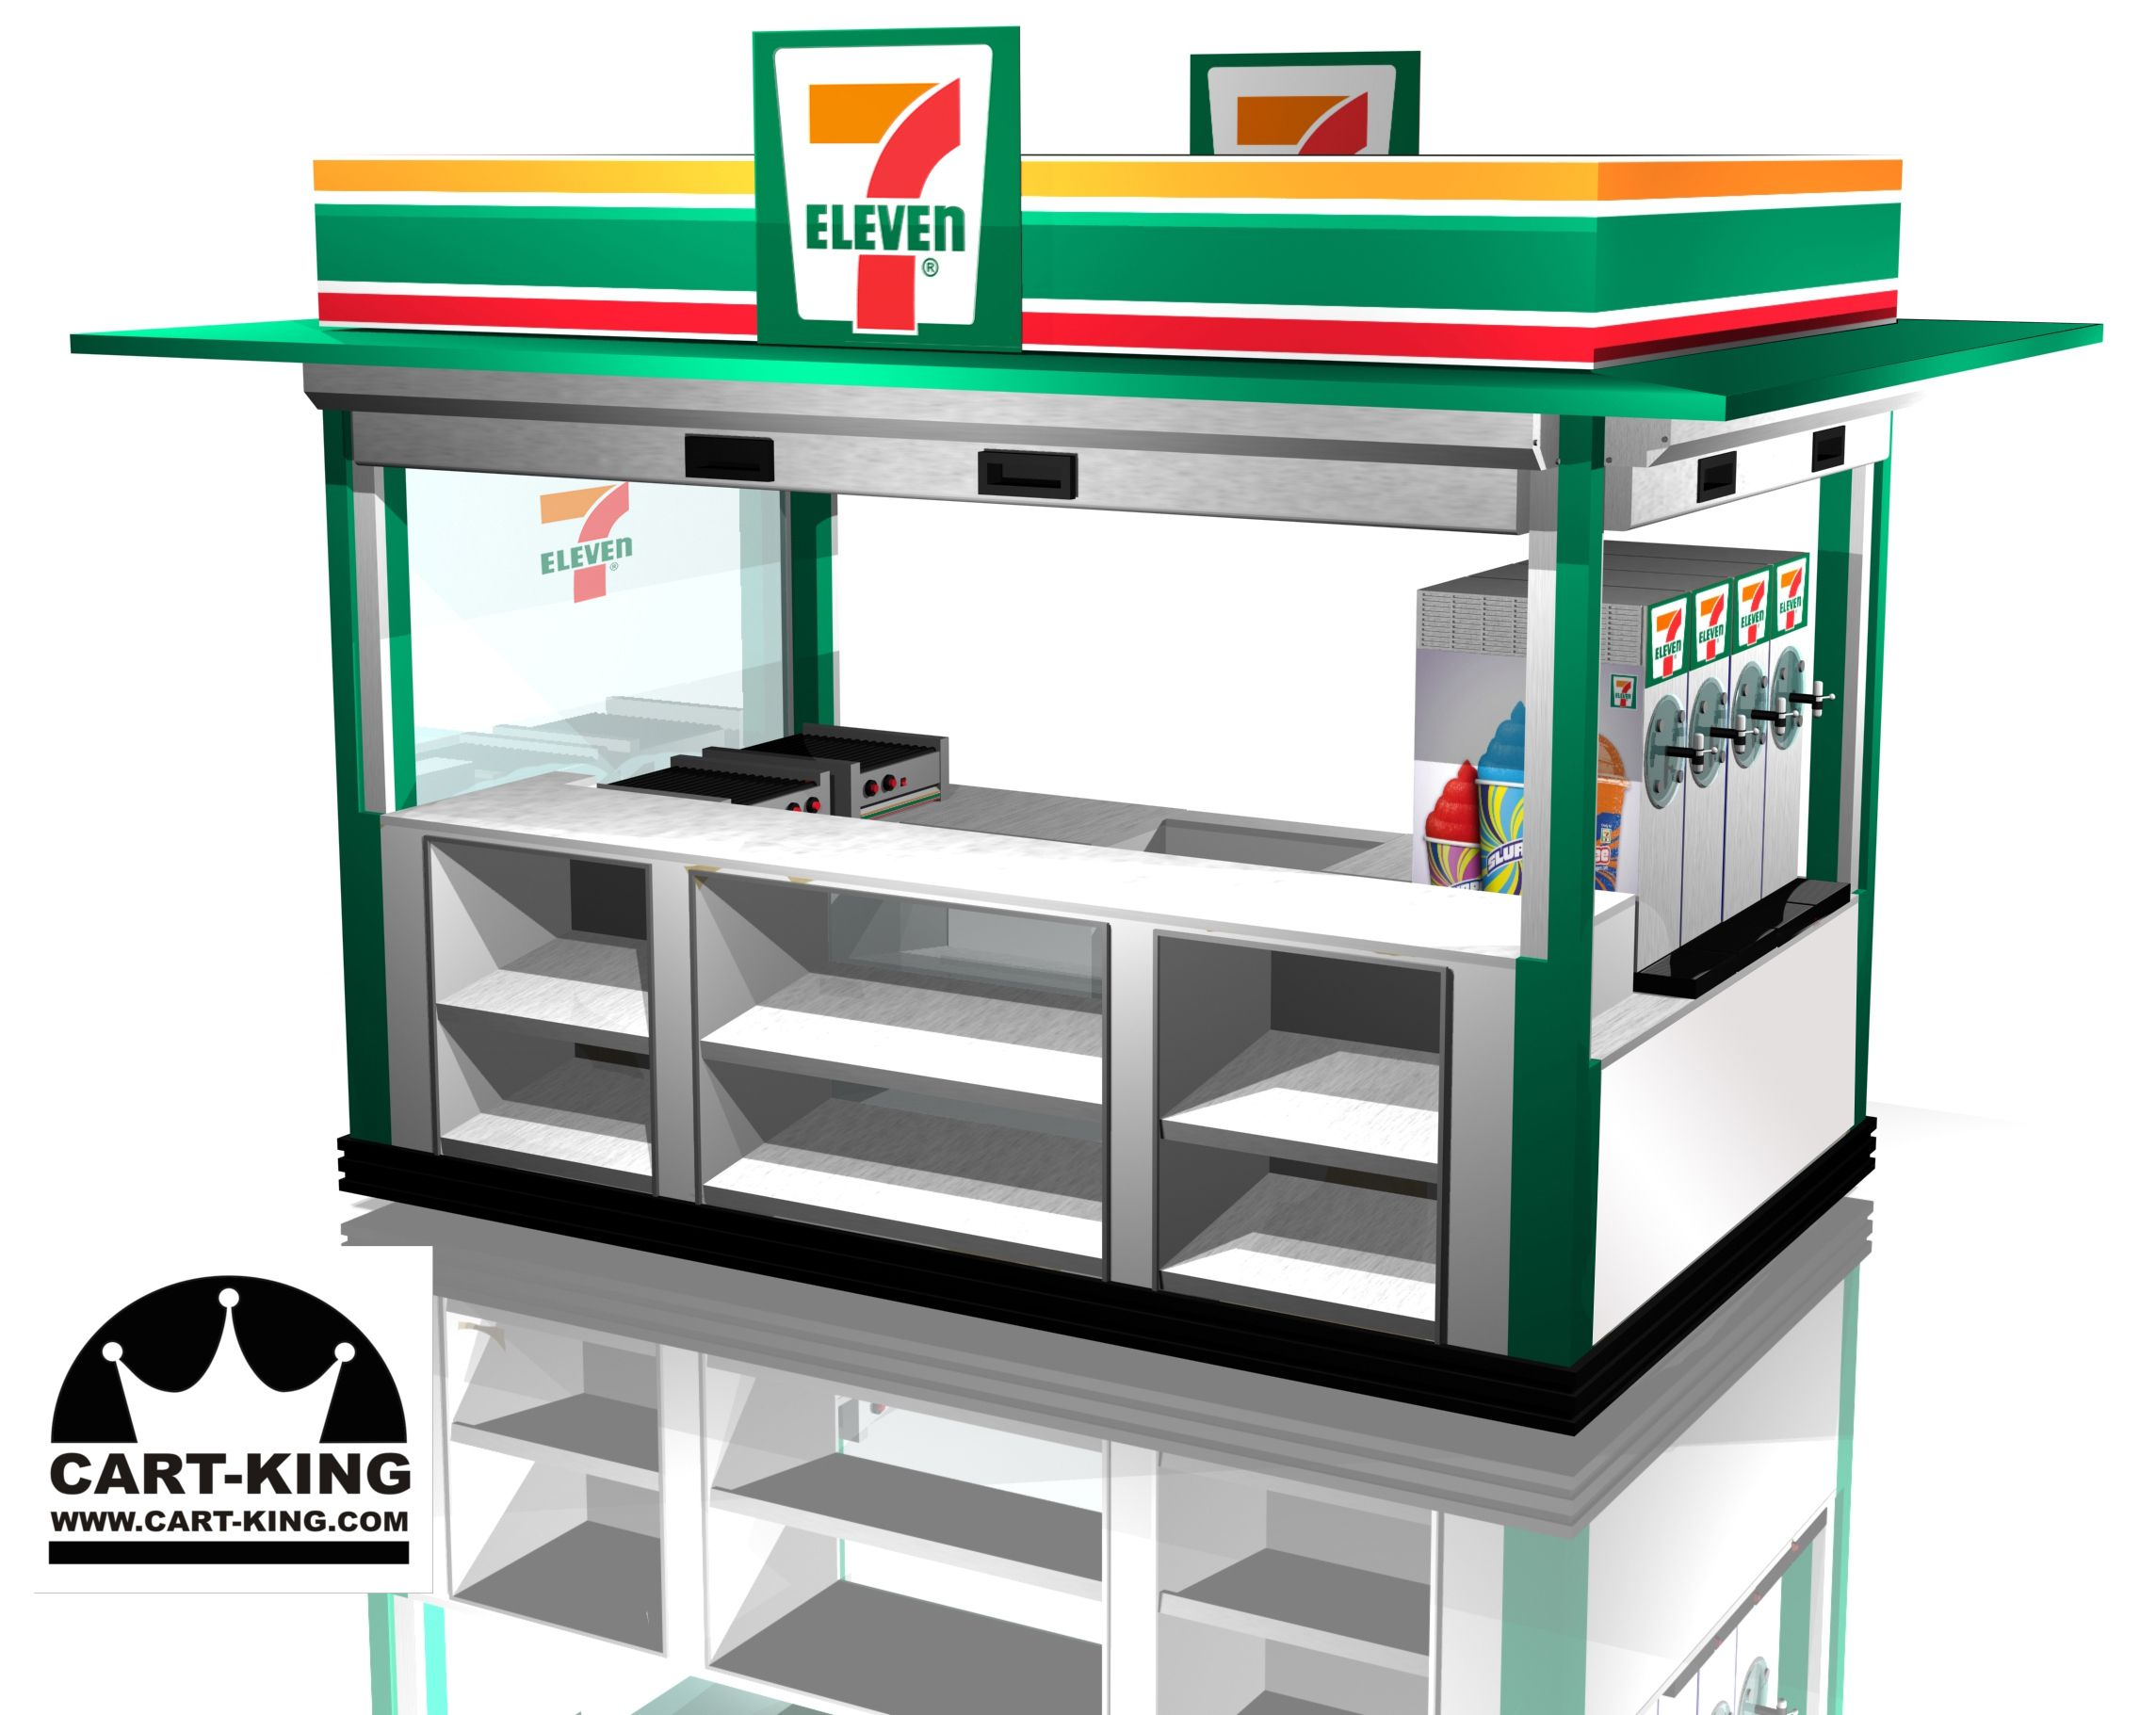 7 11 design for outdoor kiosk concept new cart and kiosk for Mobili kios